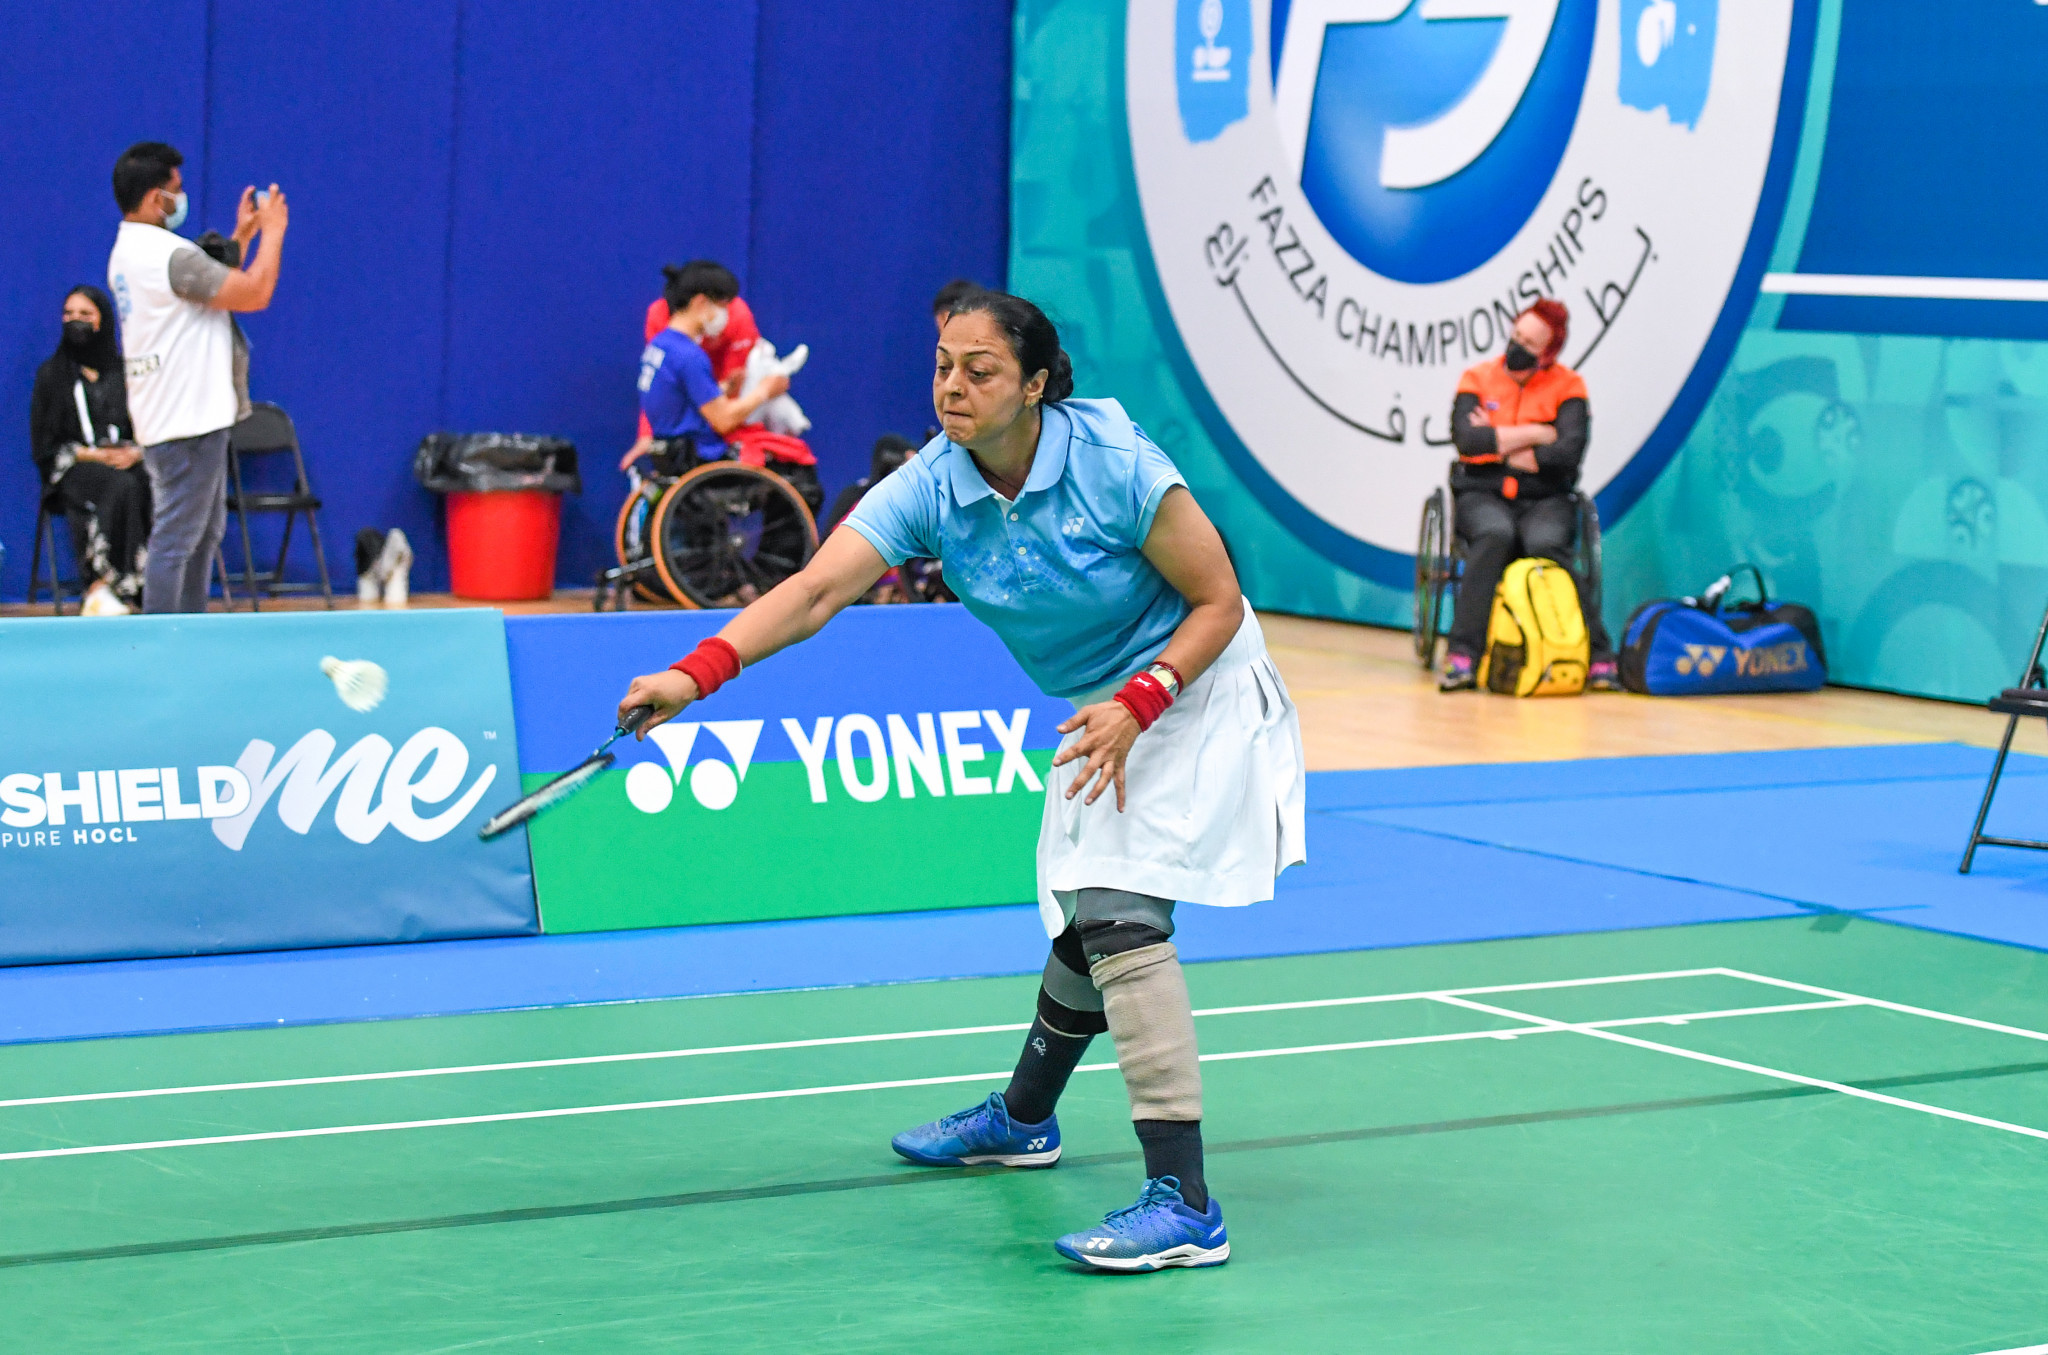 Top seeds progress on second day of Dubai Para Badminton International